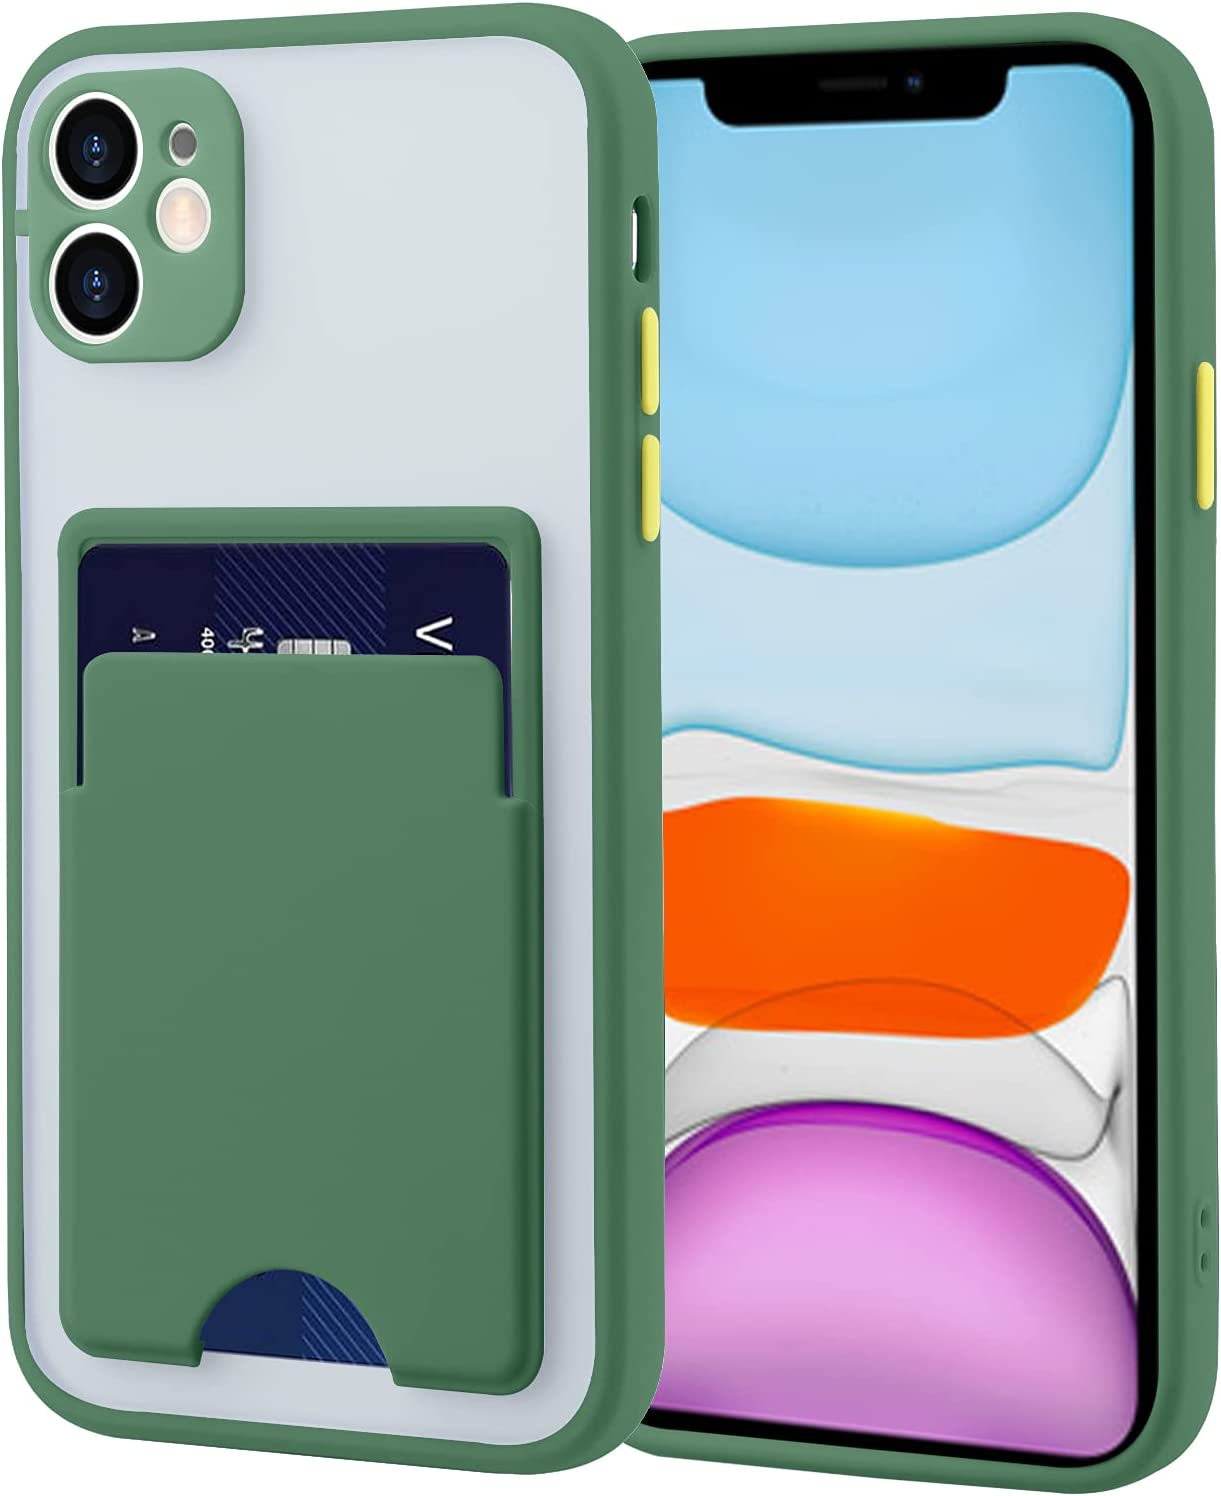 MOWIME Compatible for iPhone 11 Case with Card Holder Translucent Matte Hard PC Back and Soft TPU Bumper Anti Scratch Shockproof Protective Cover Phone Case for iPhone 11 6.1 Inch, Green